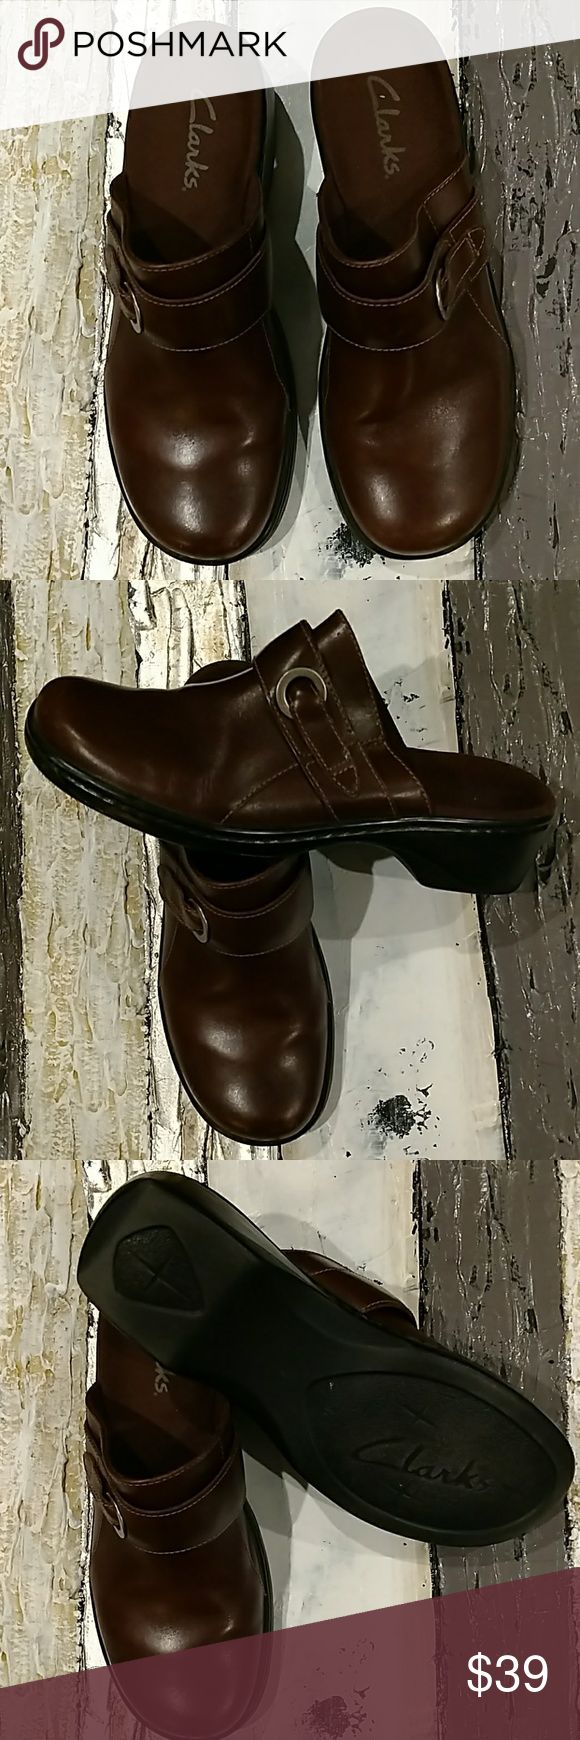 Clarks brown mules clogs shoes 8 M Like new and oh so comfy. These are great all year round. They were only worn once so they are like new. Clarks Shoes Mules & Clogs